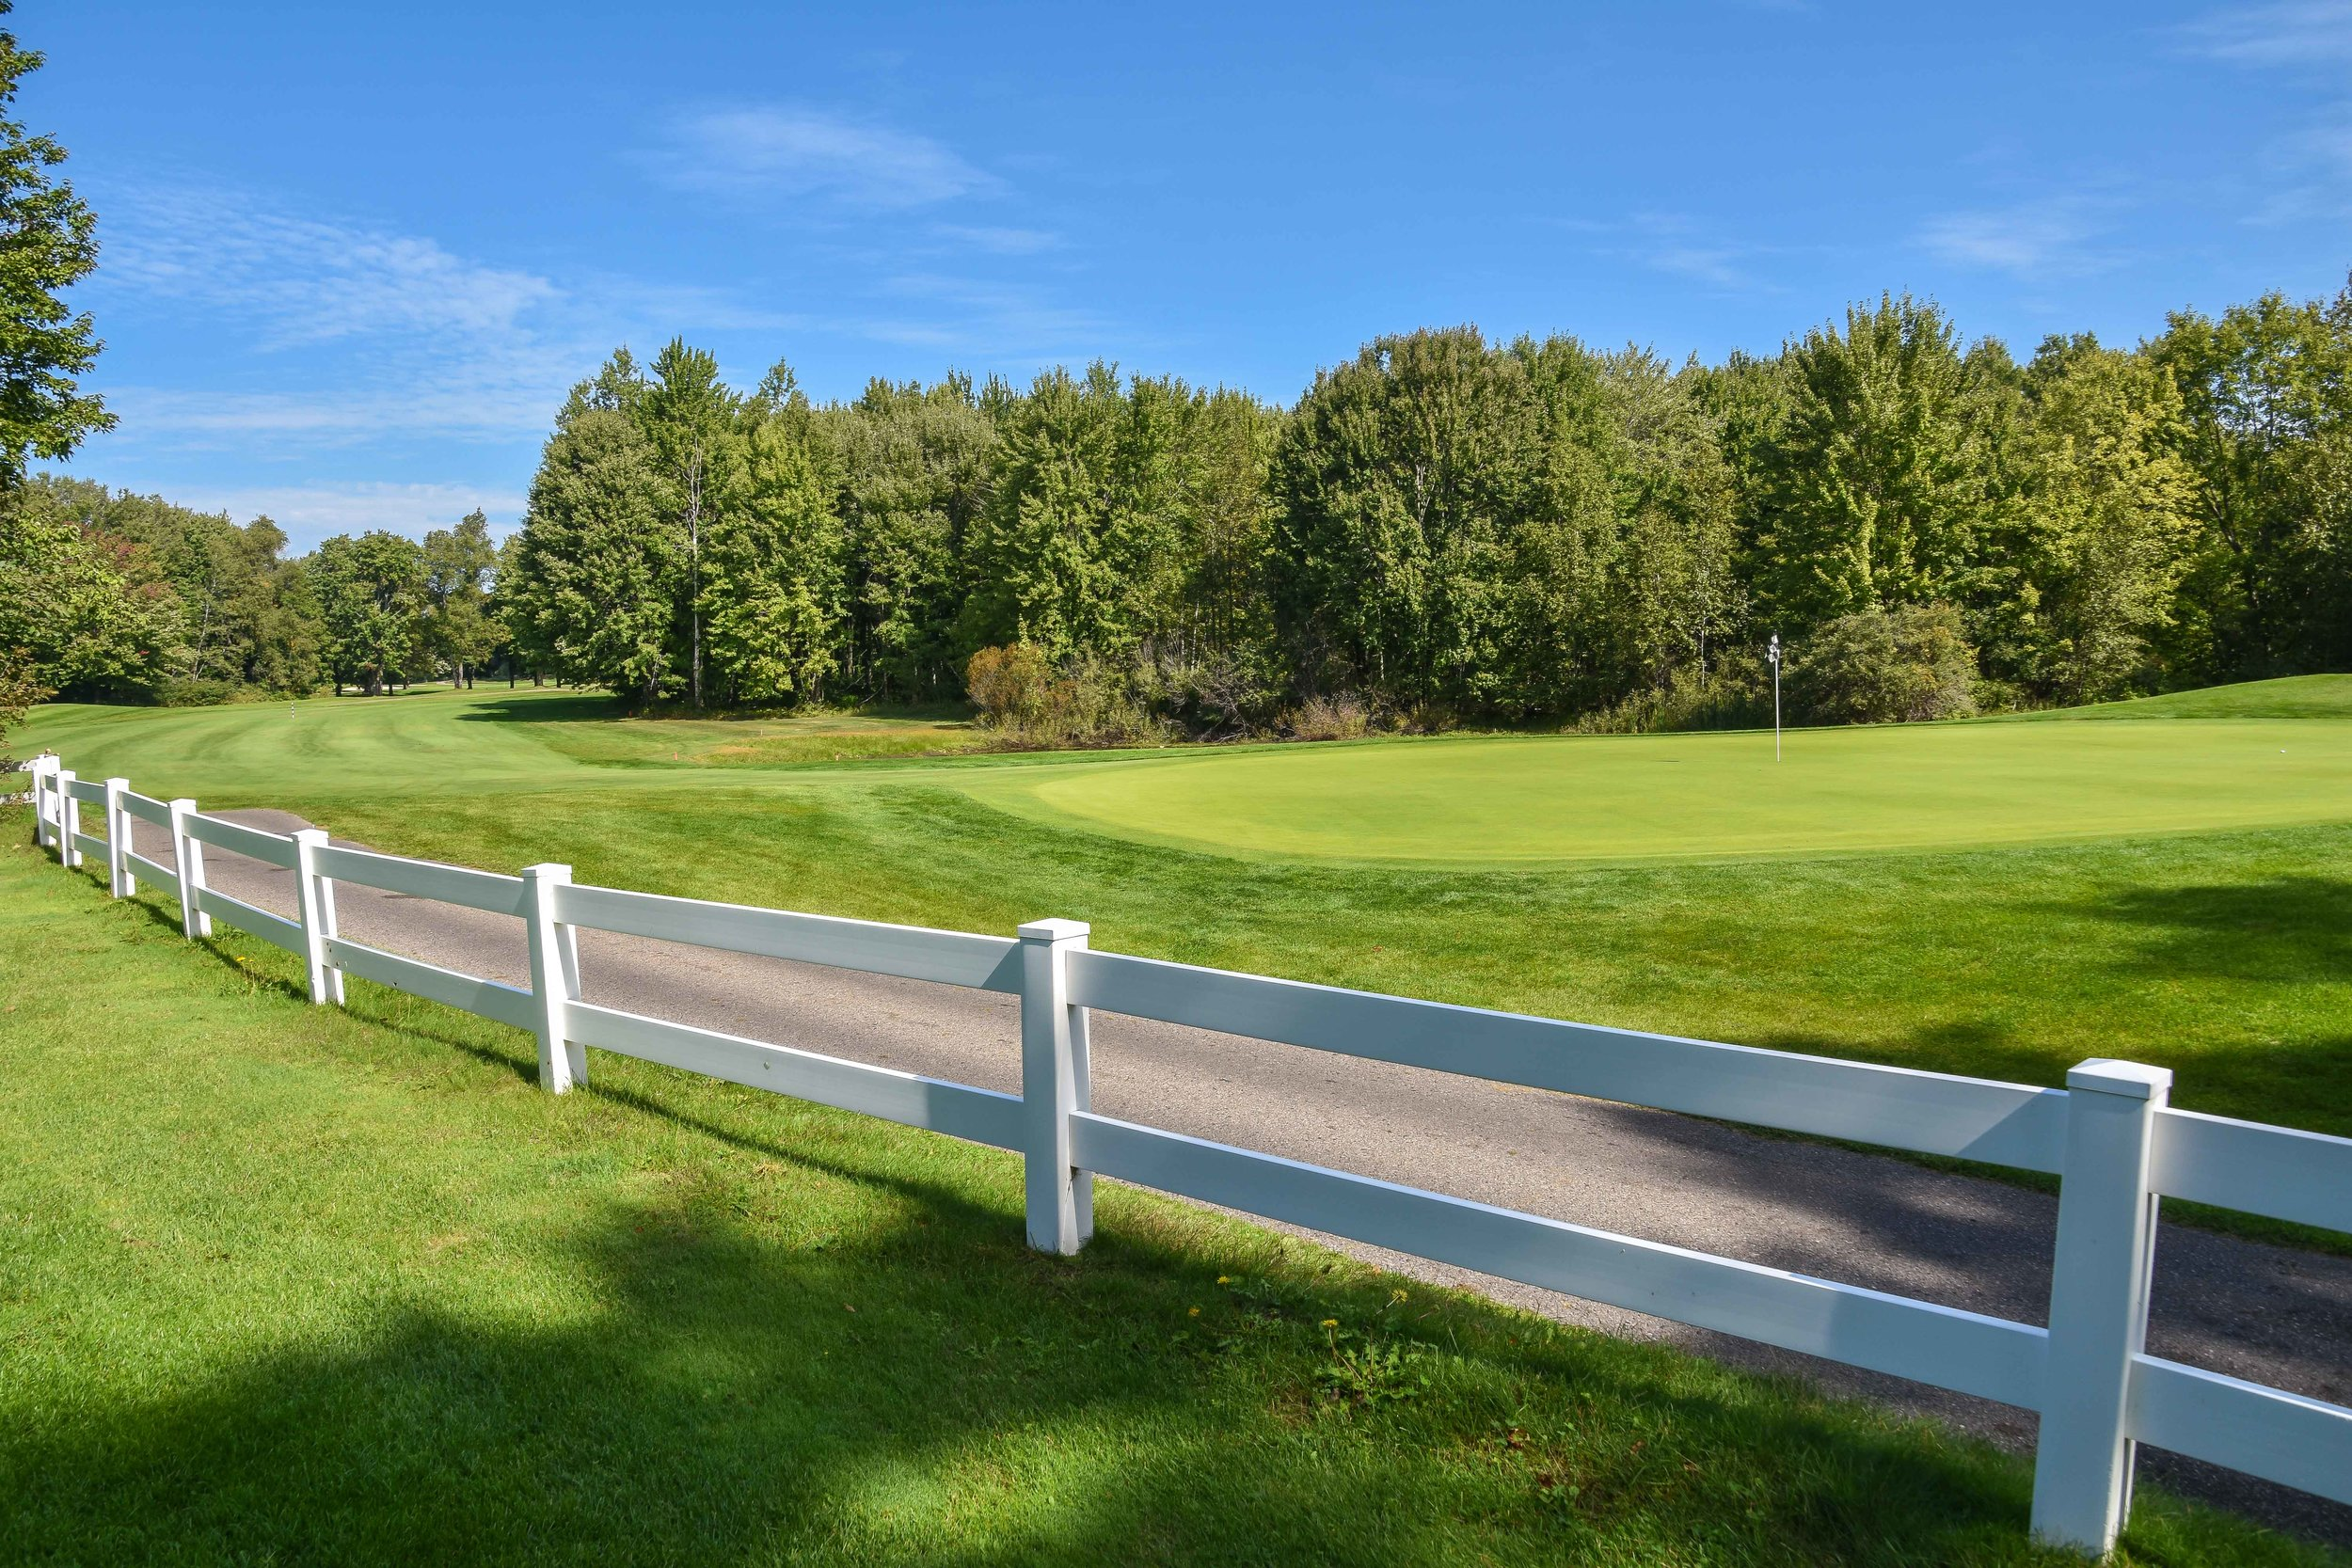 Block that cart path with a picket fence. Yeah!